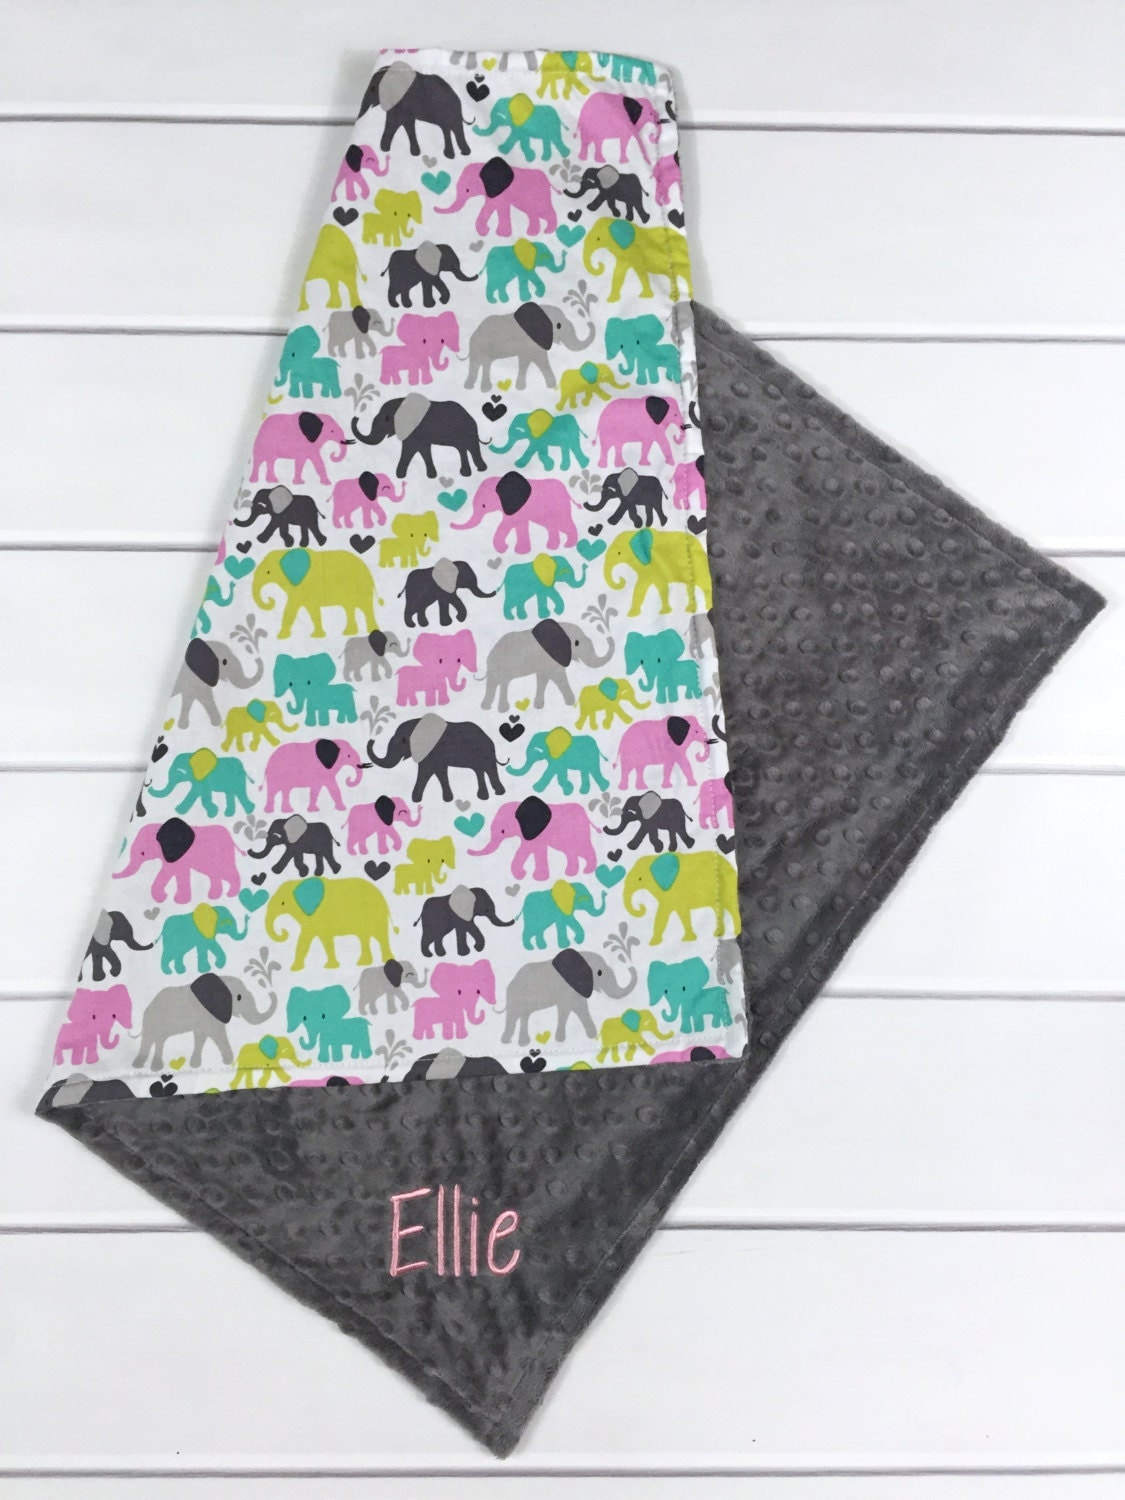 Baby Gift Ideas Personalized : New baby gift personalized girl blanket elephant